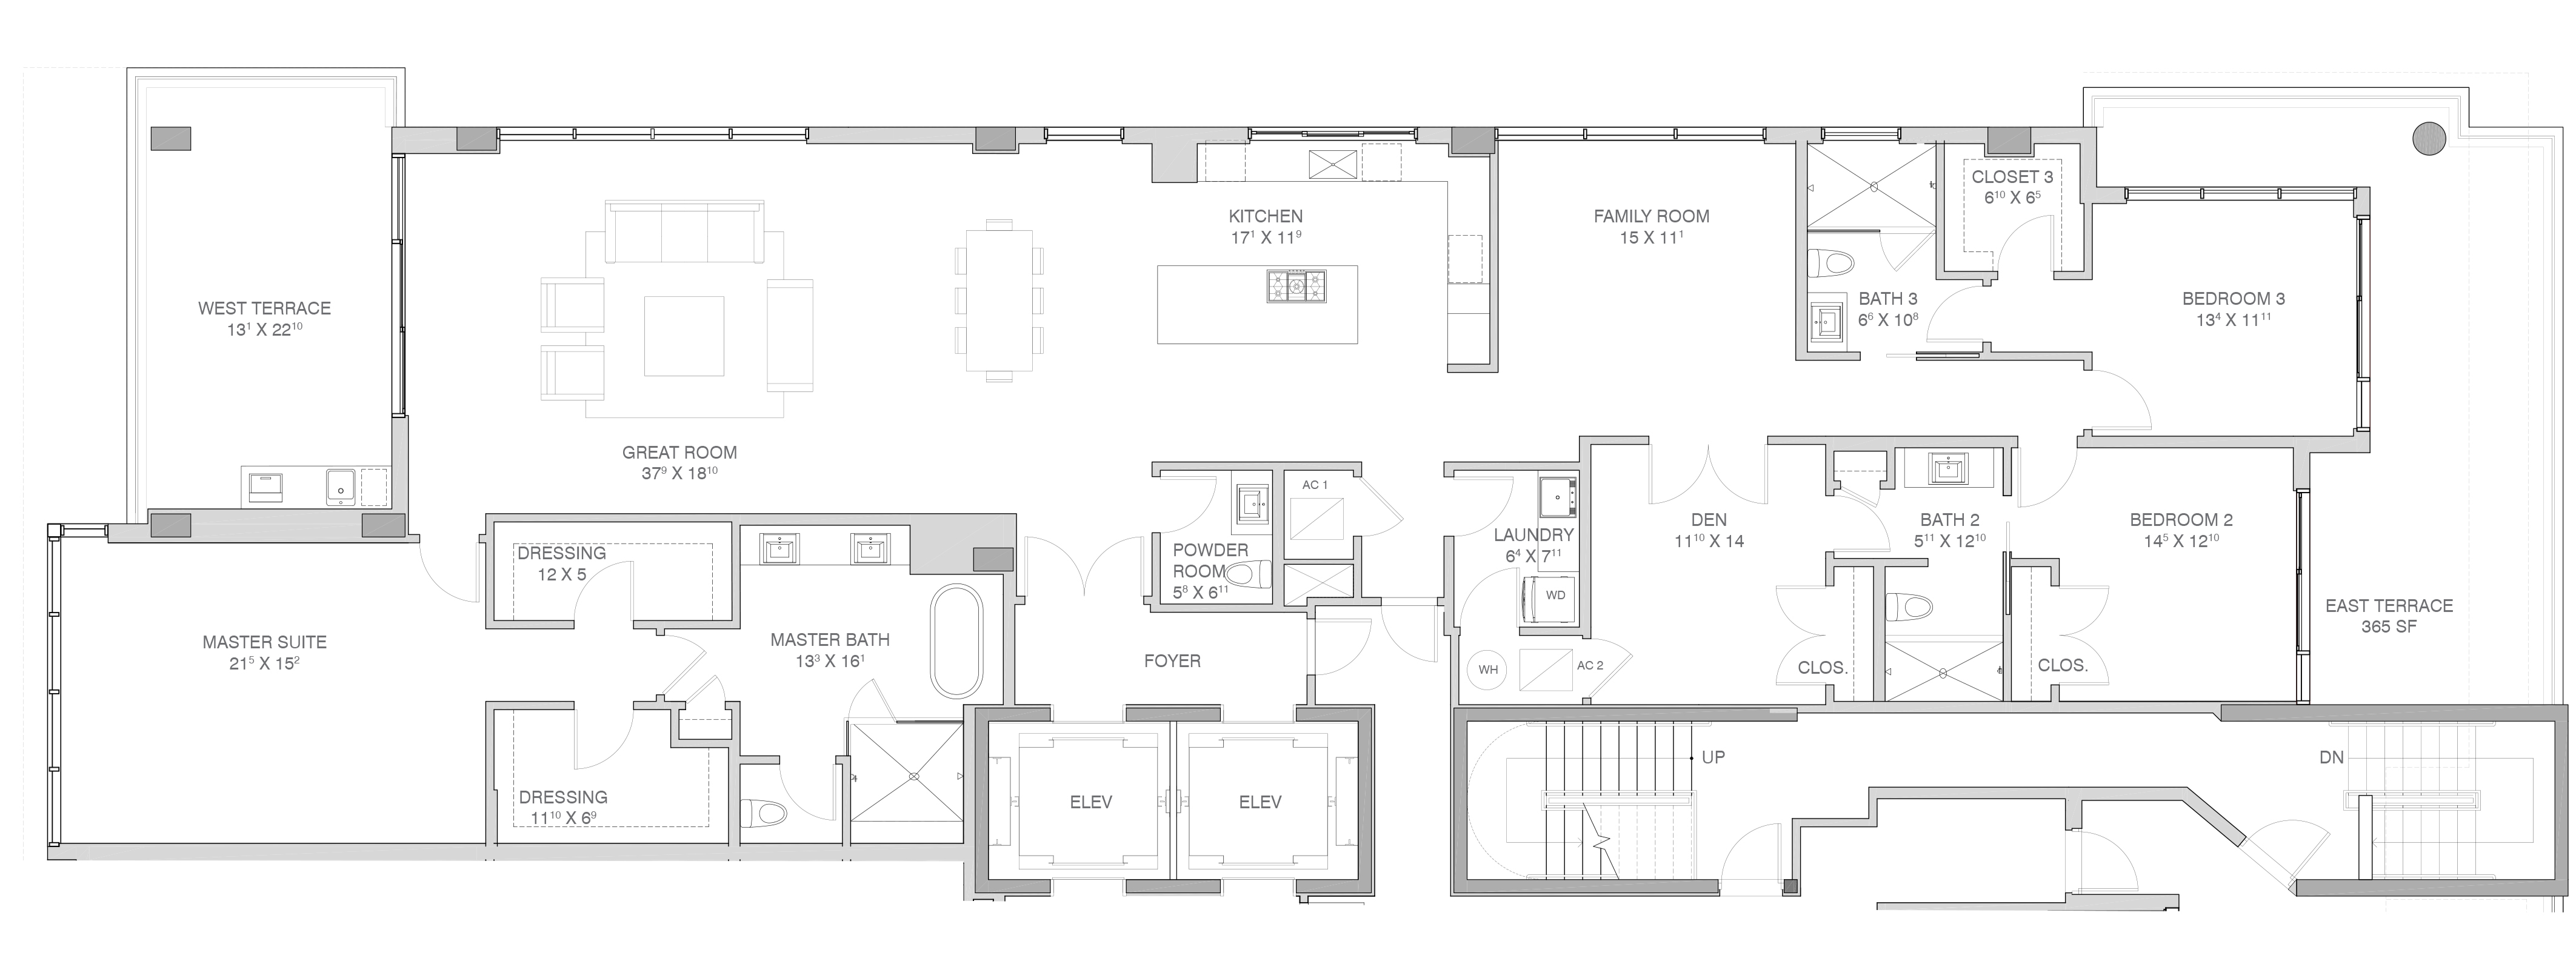 Adagio Fort Lauderdale Beach - Floorplan 8